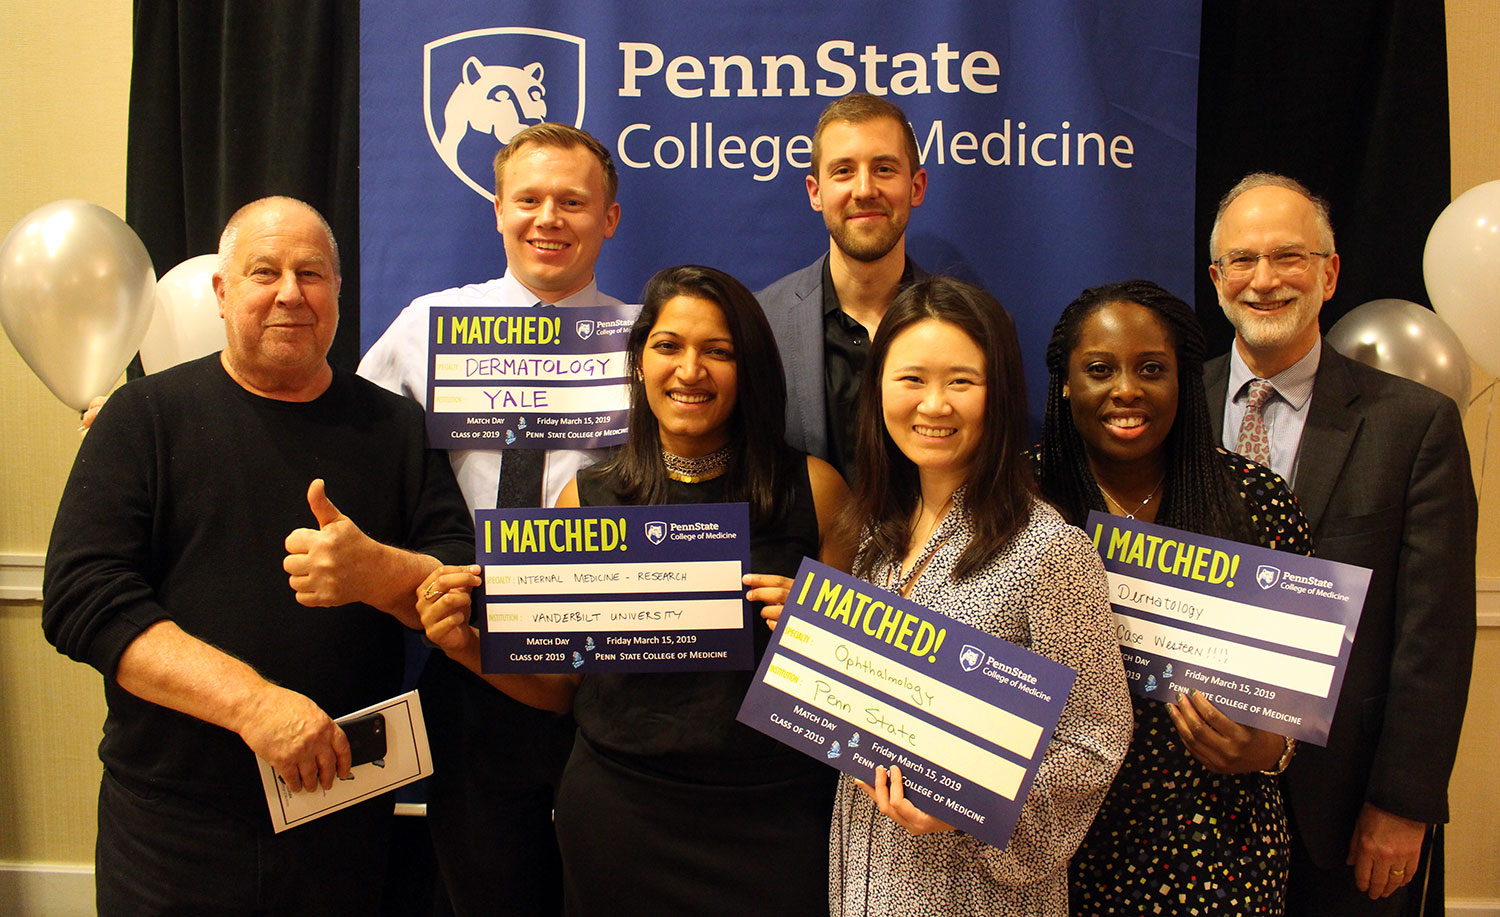 MD/PhD students find out their residency matches - Penn